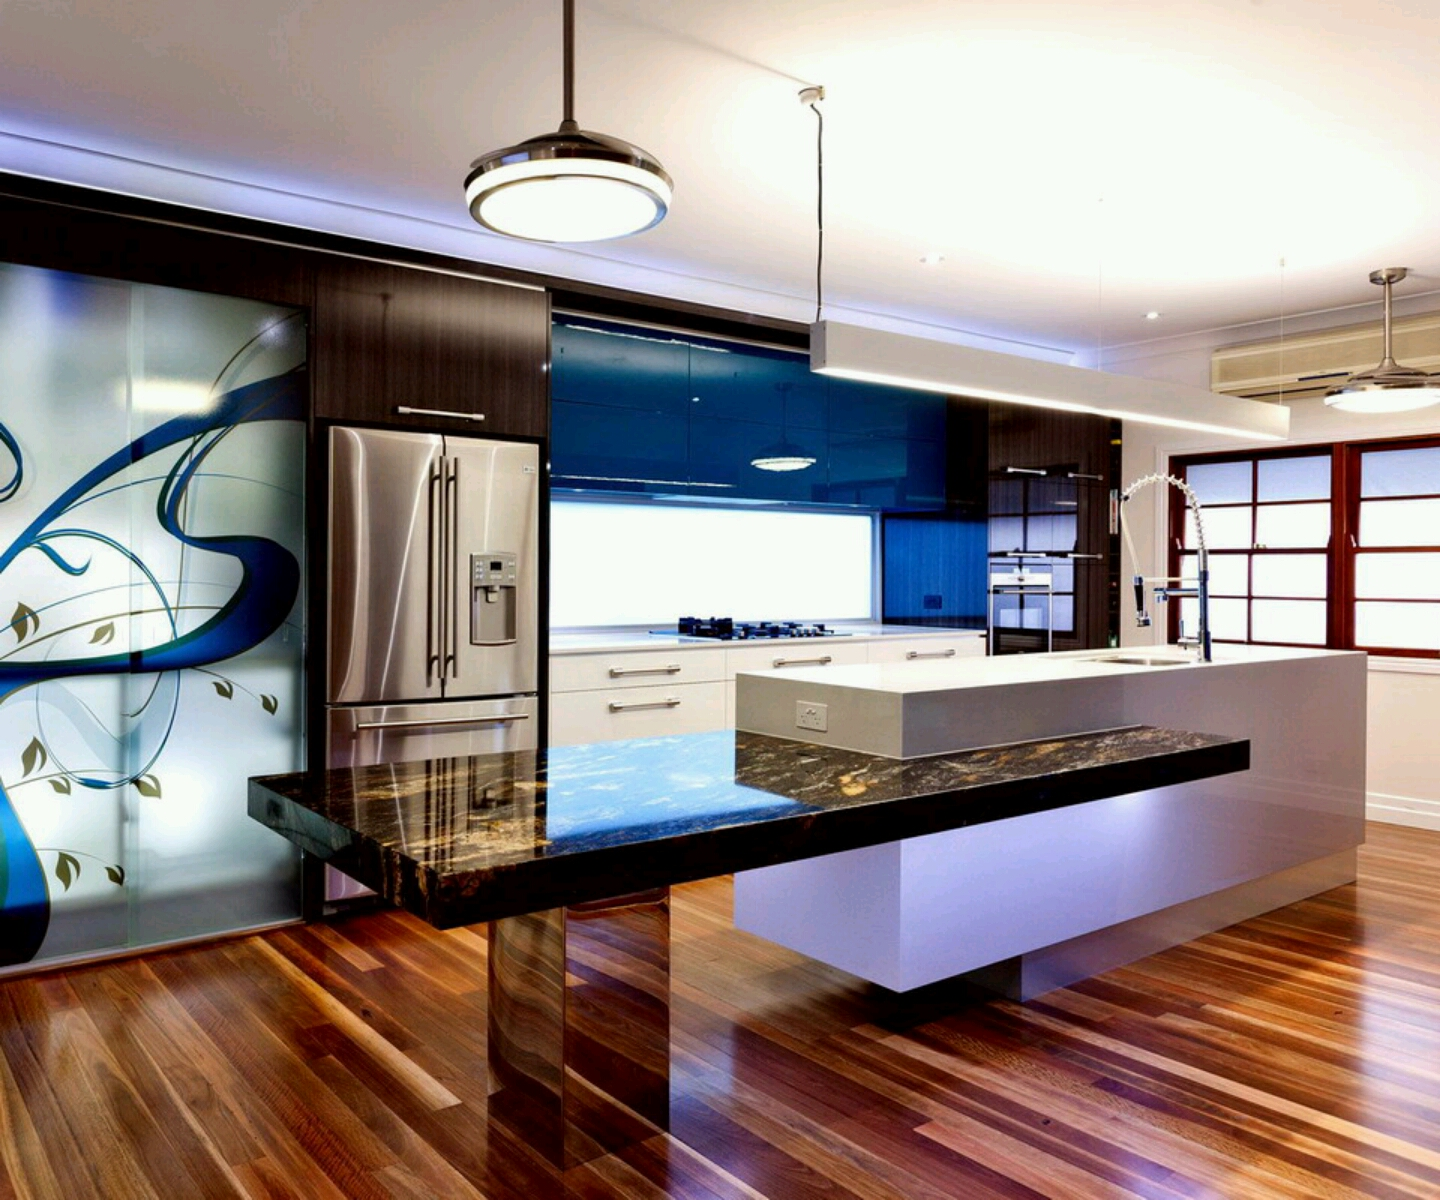 Ultra modern kitchen designs ideas new home designs Modern kitchen design tips